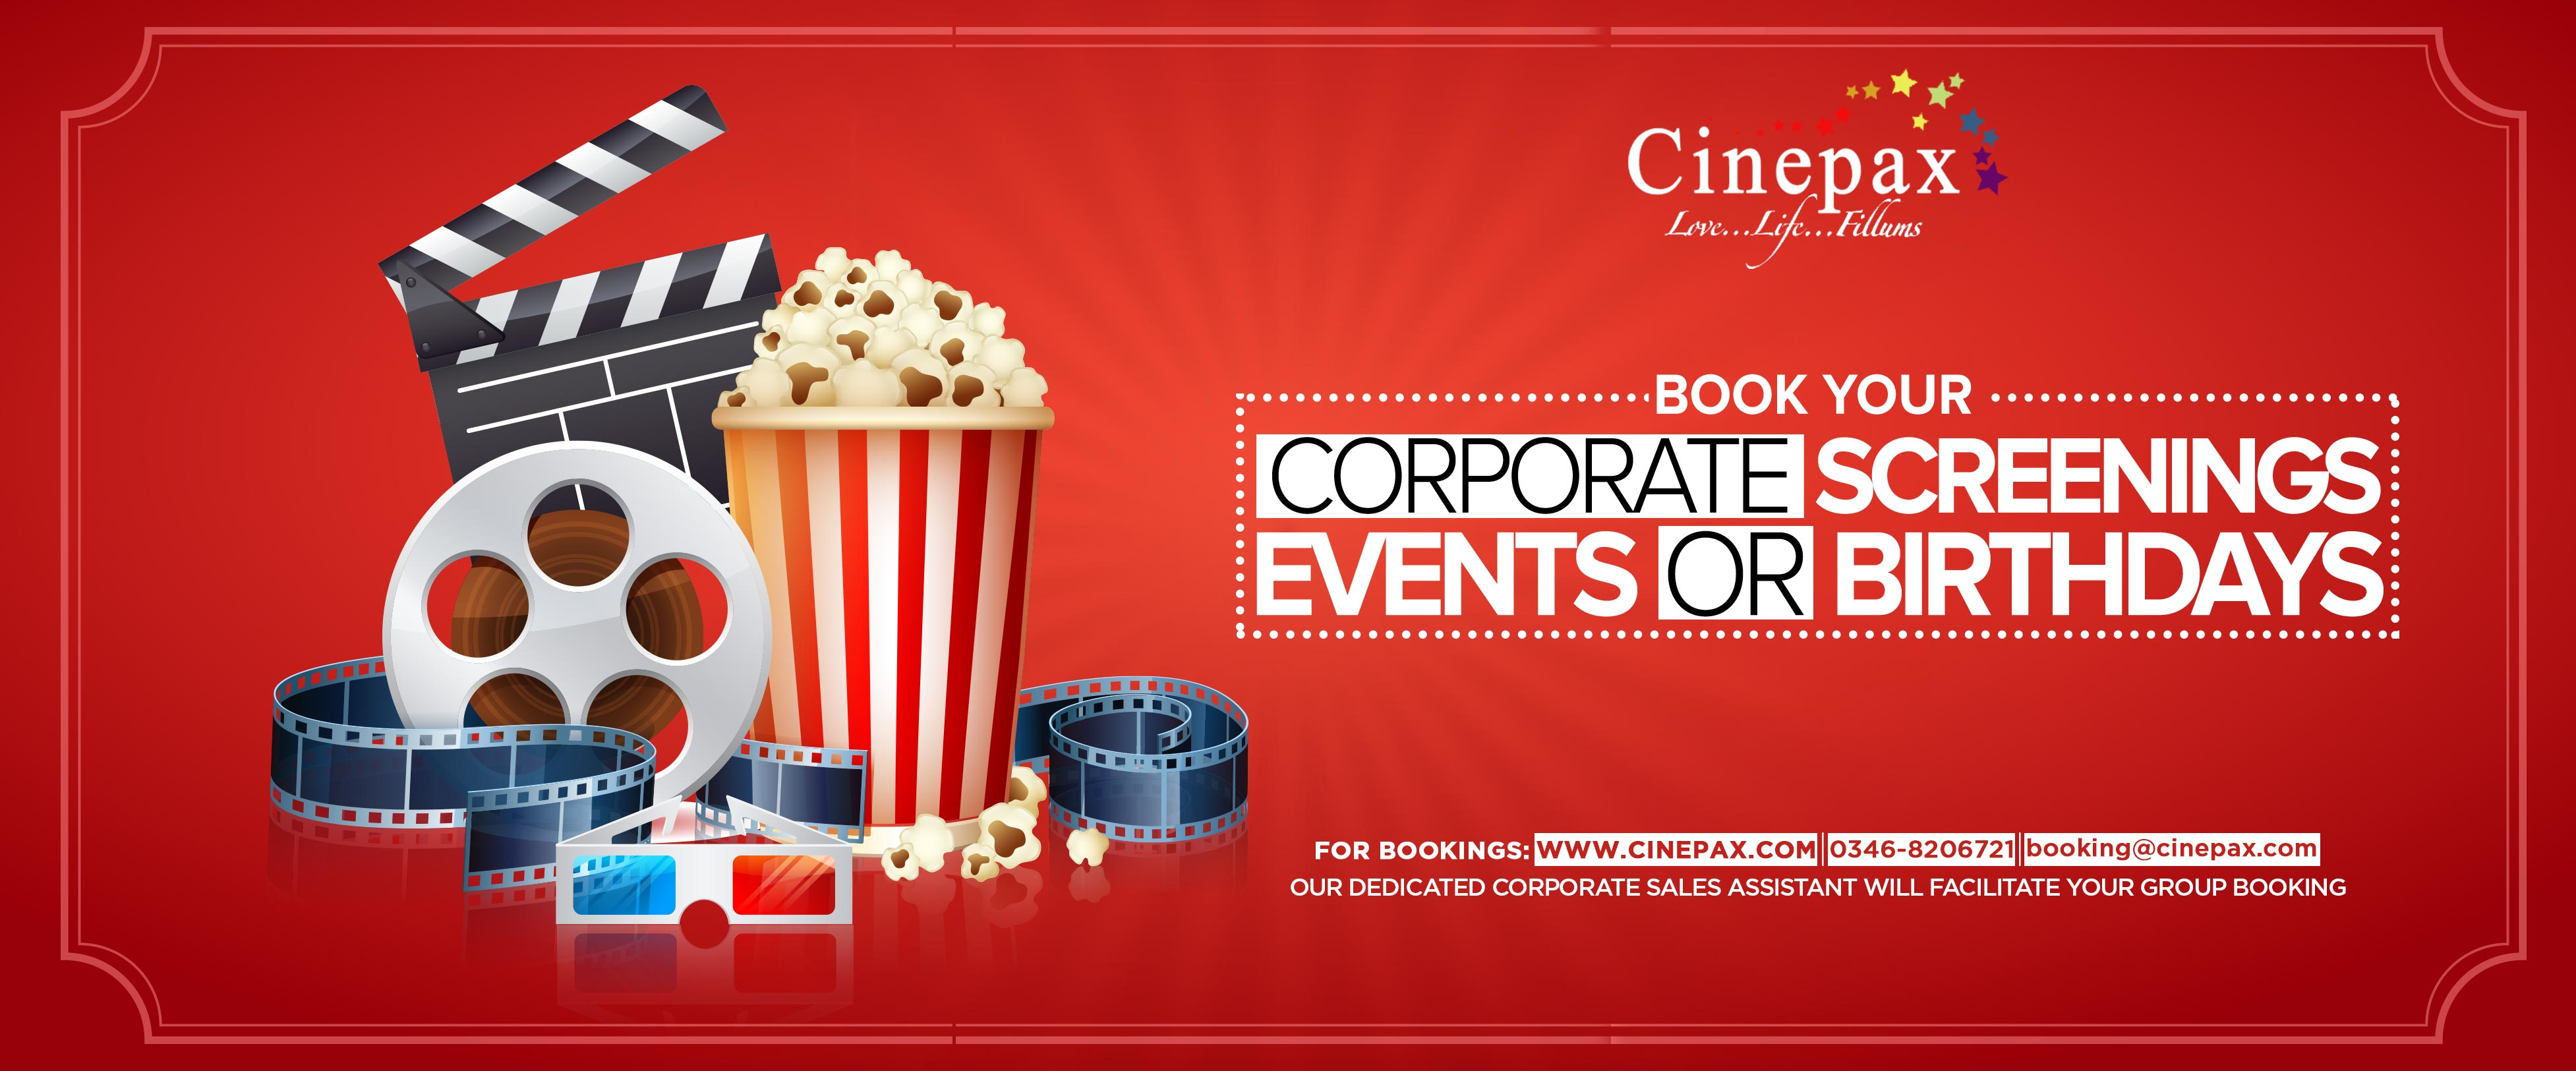 Cinepax Cinema Ocean Mall Corporate Screenings, Events And Birthdays